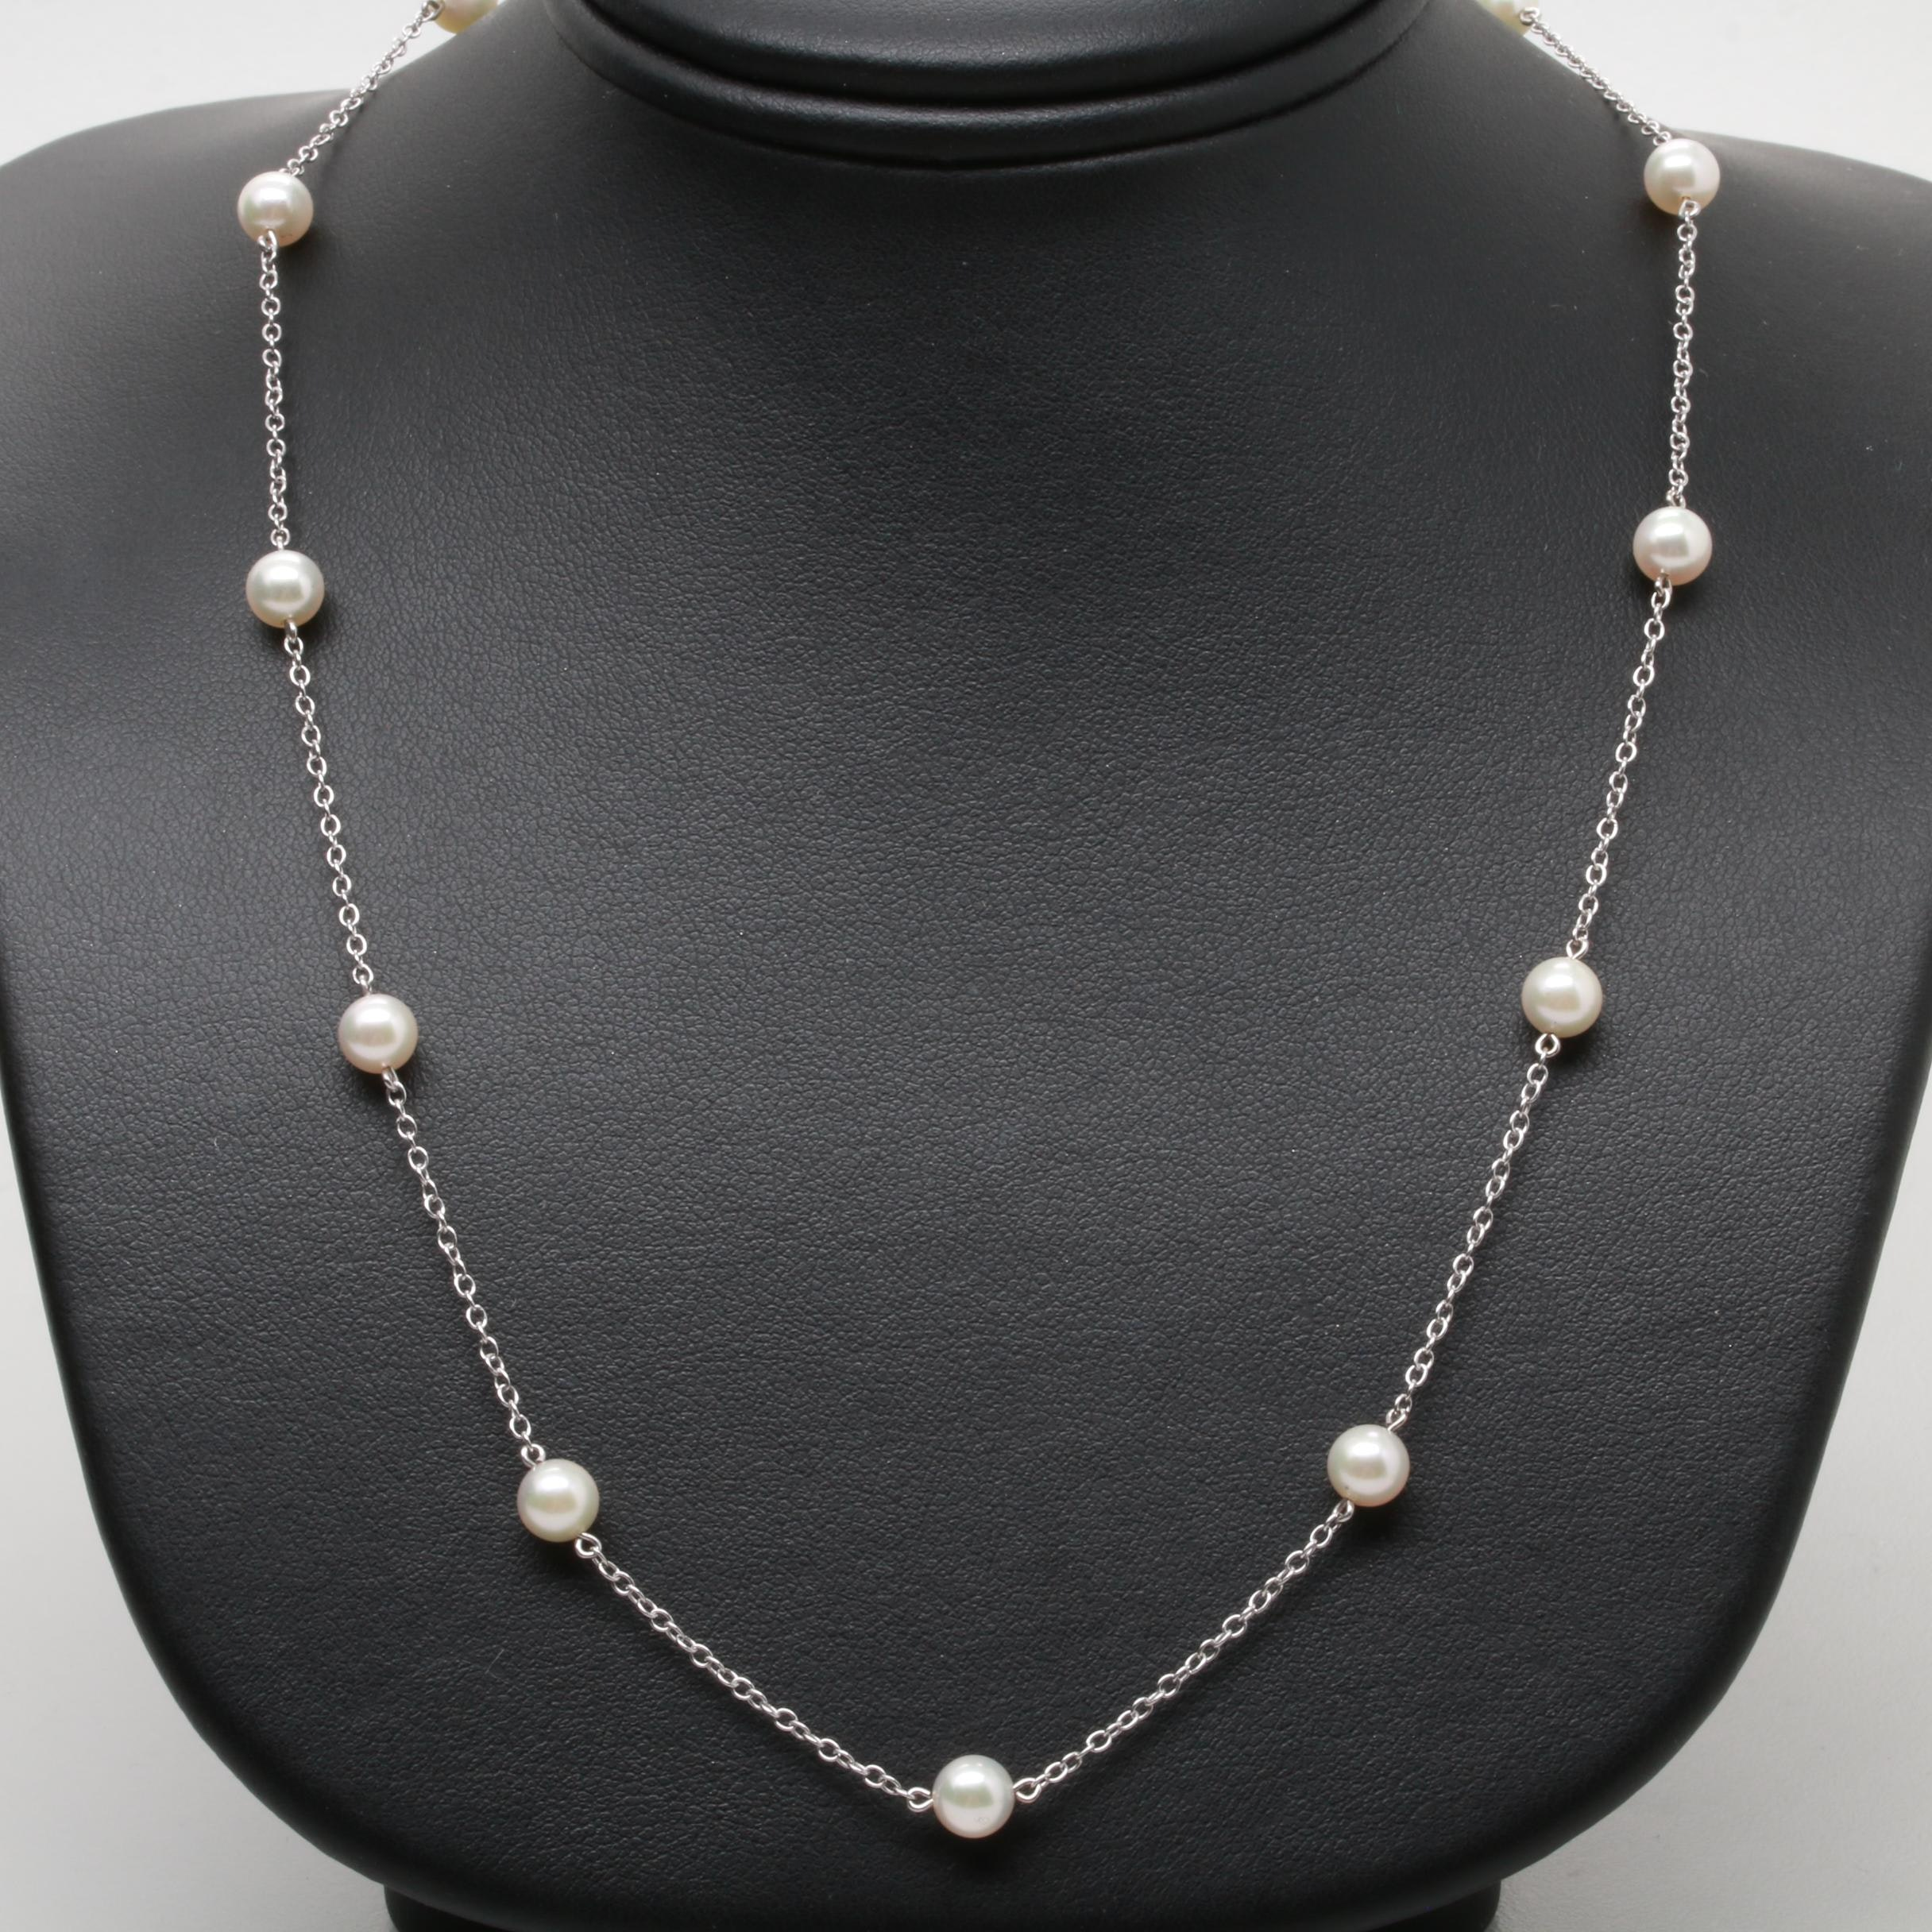 Mikimoto 18K White Gold Cultured Pearl Station Necklace